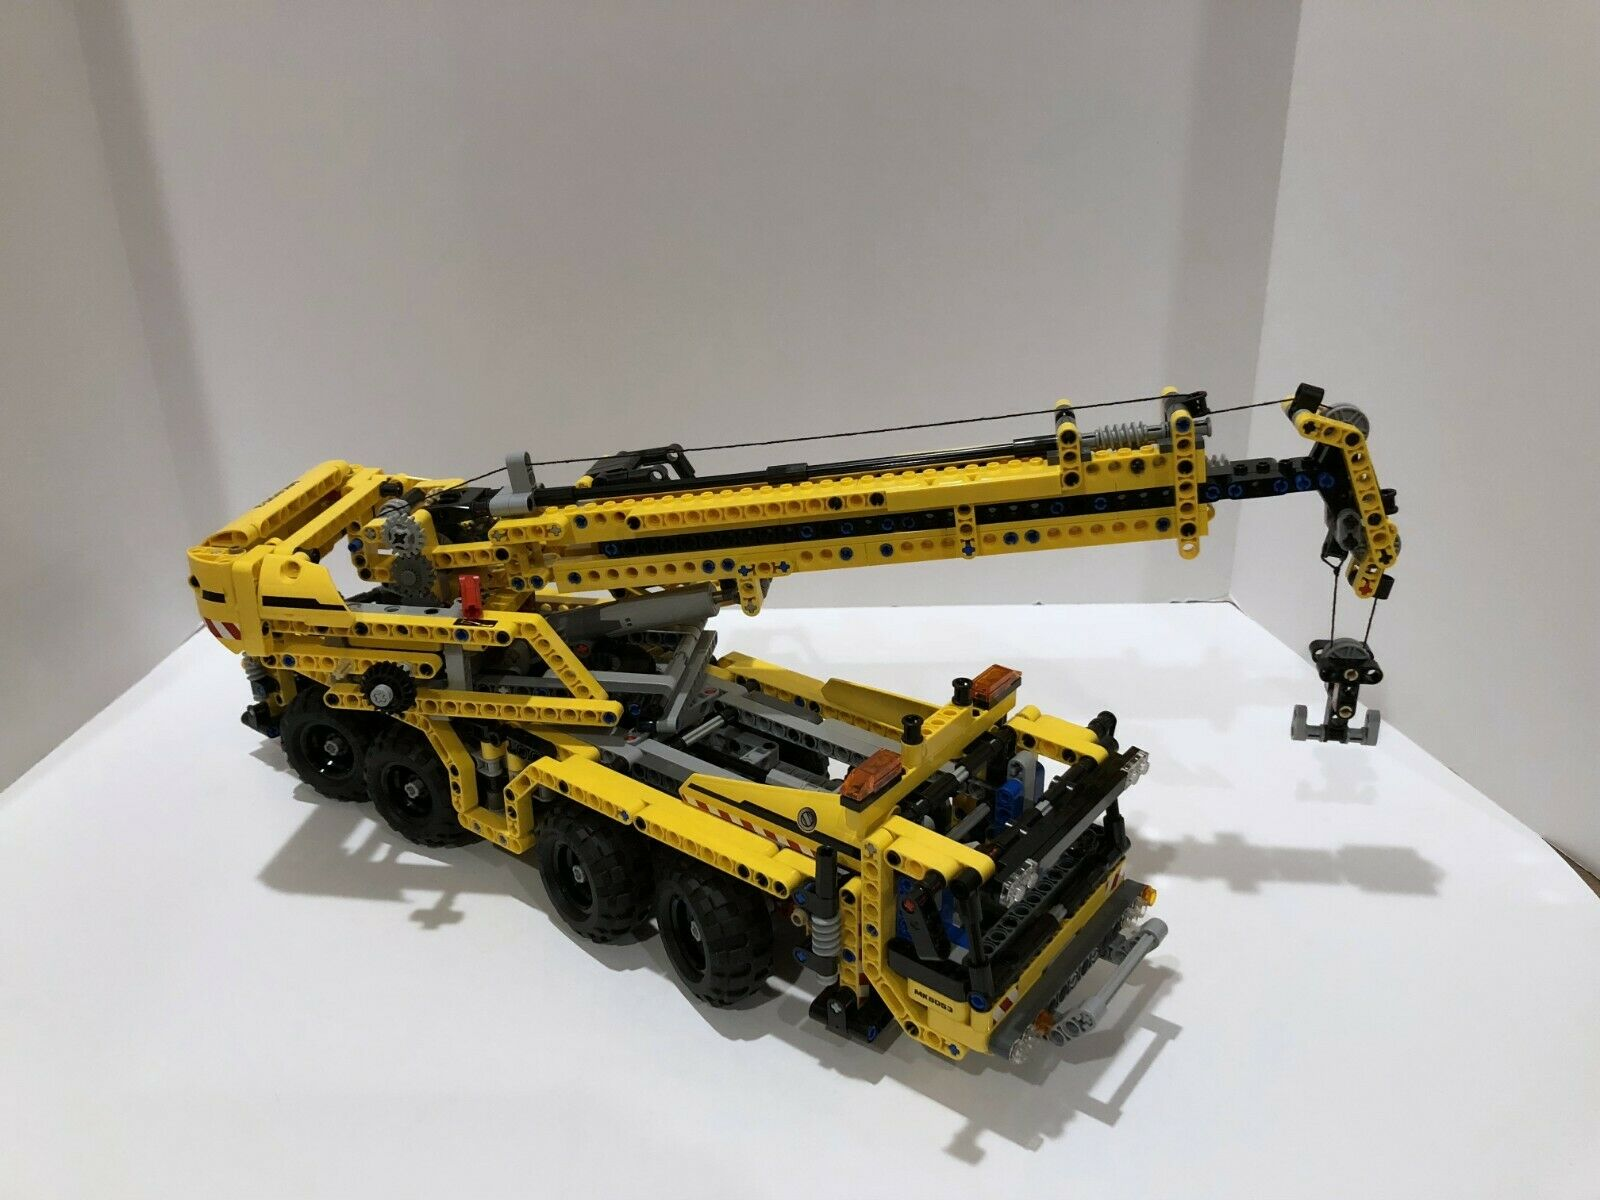 LEGO Technic  Model  Construction     Mobile Crane 8053 - Fully assembled. 632b54